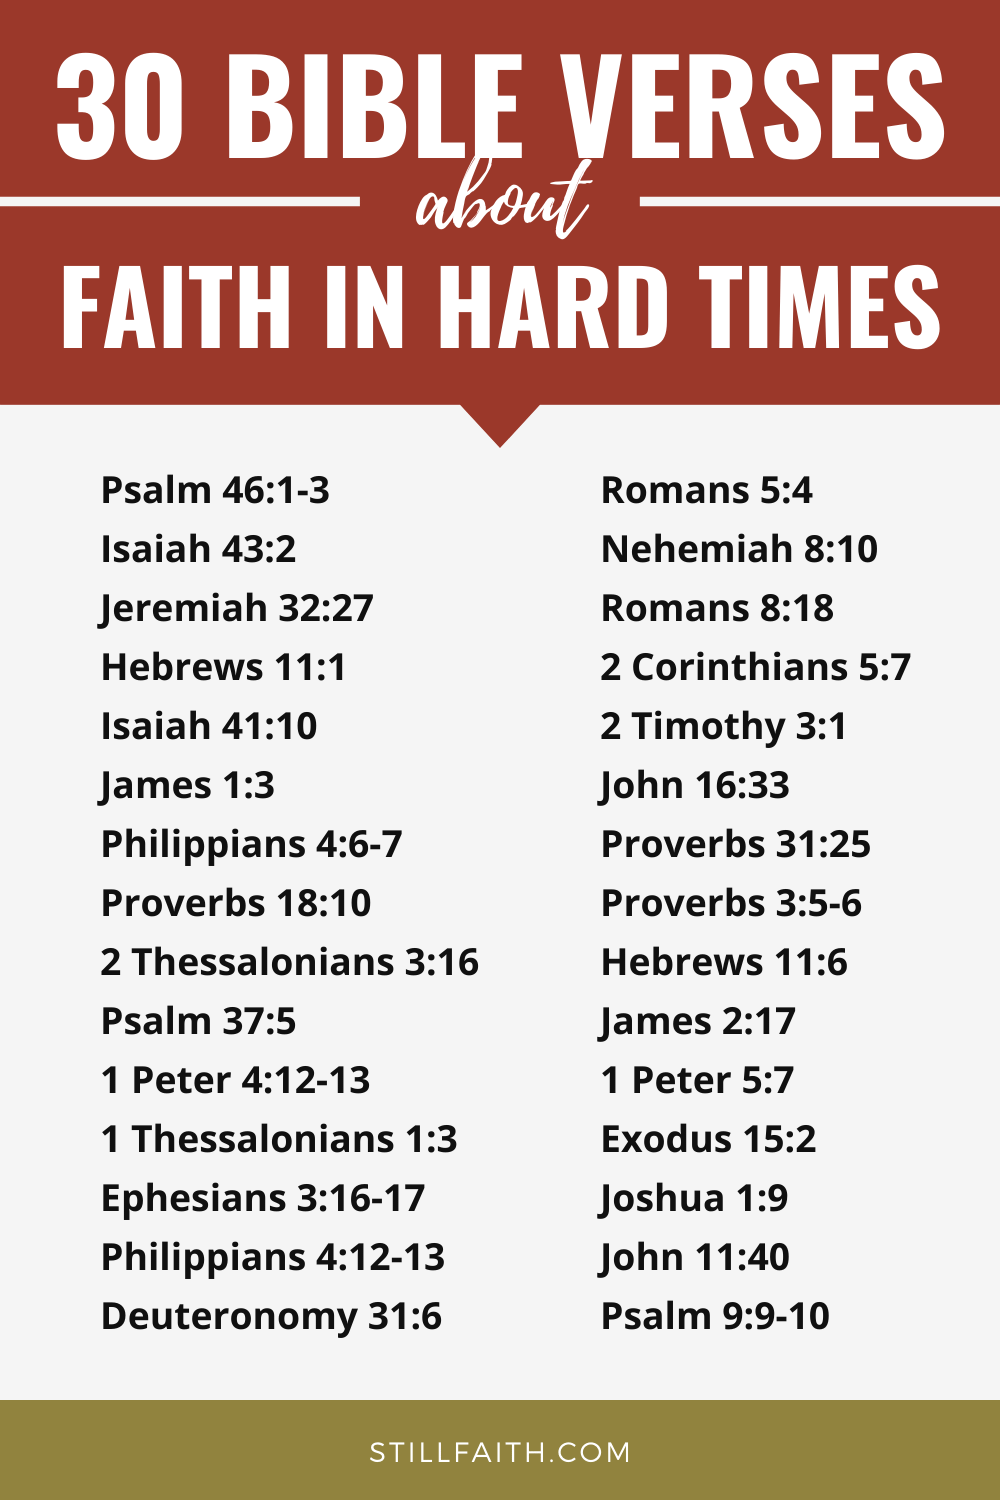 What Does the Bible Say about Faith in Hard Times?